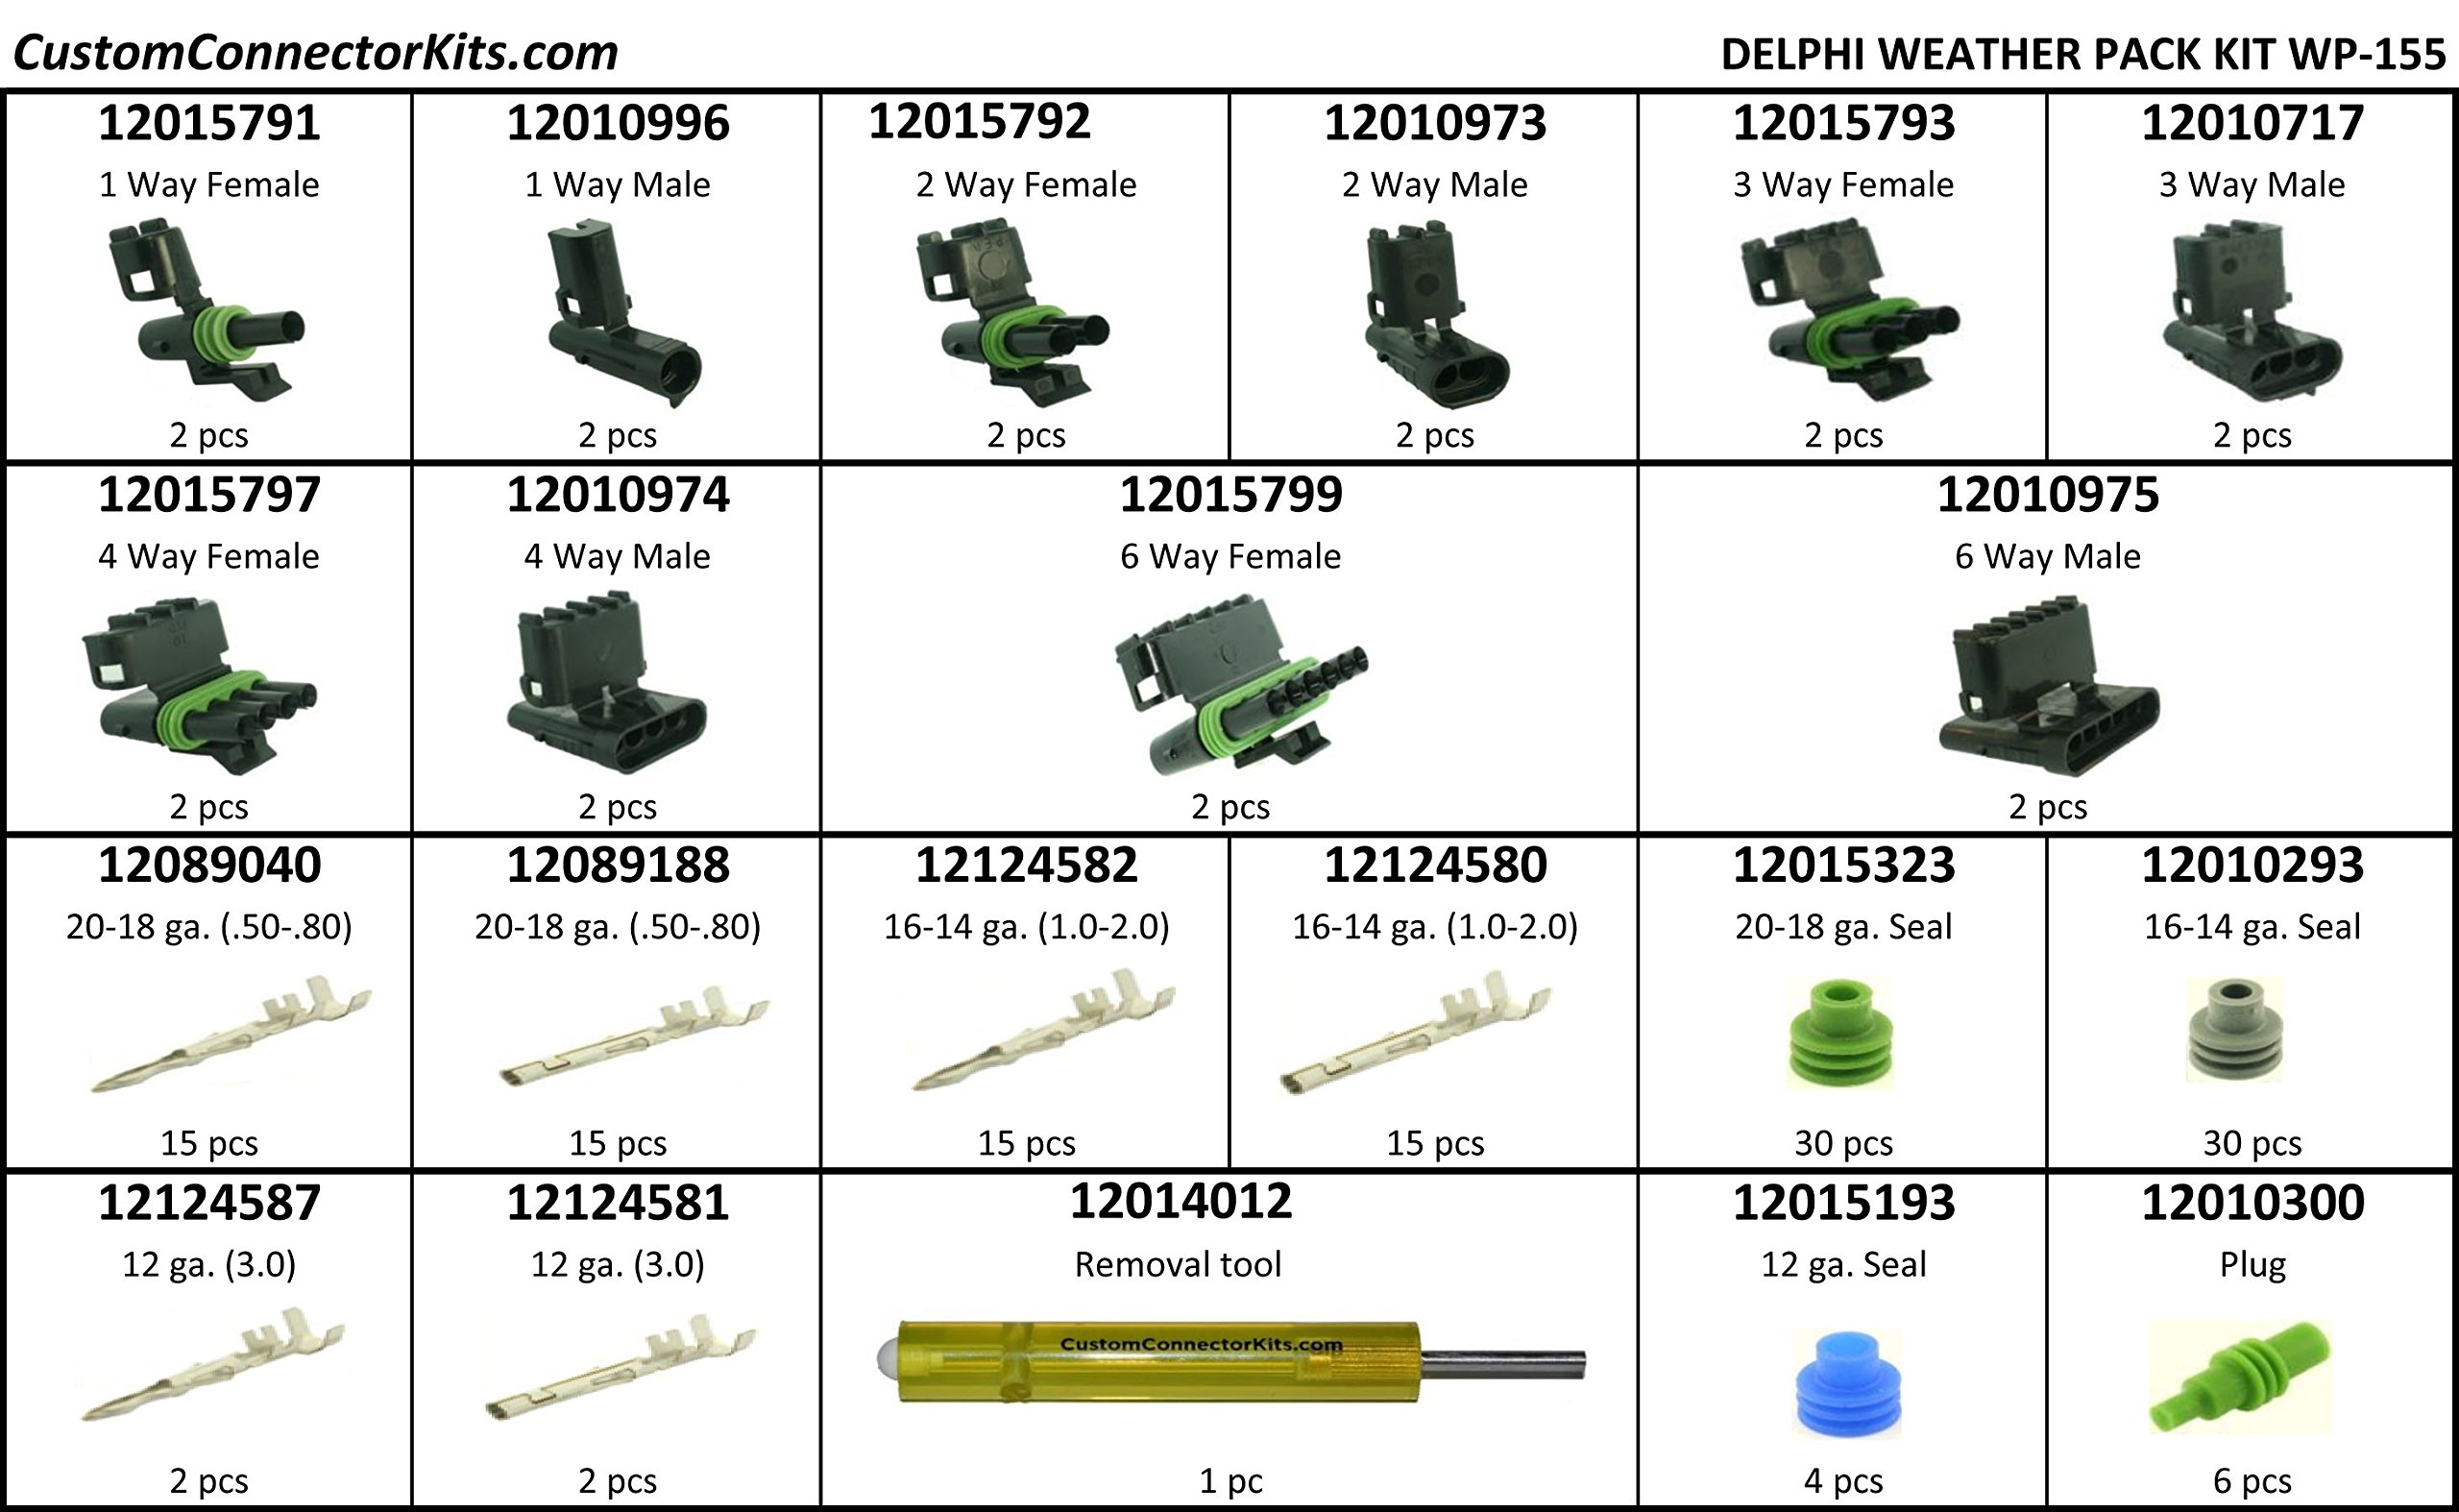 Delphi Weather Pack Connector Kit WP-155 With Pro Tool: Sealed Weatherproof Automotive Electrical Connectors 20-12 Gauge 155 Piece Kit With 12014254 Pro Crimp Tool by DELPHIKITS (Image #2)